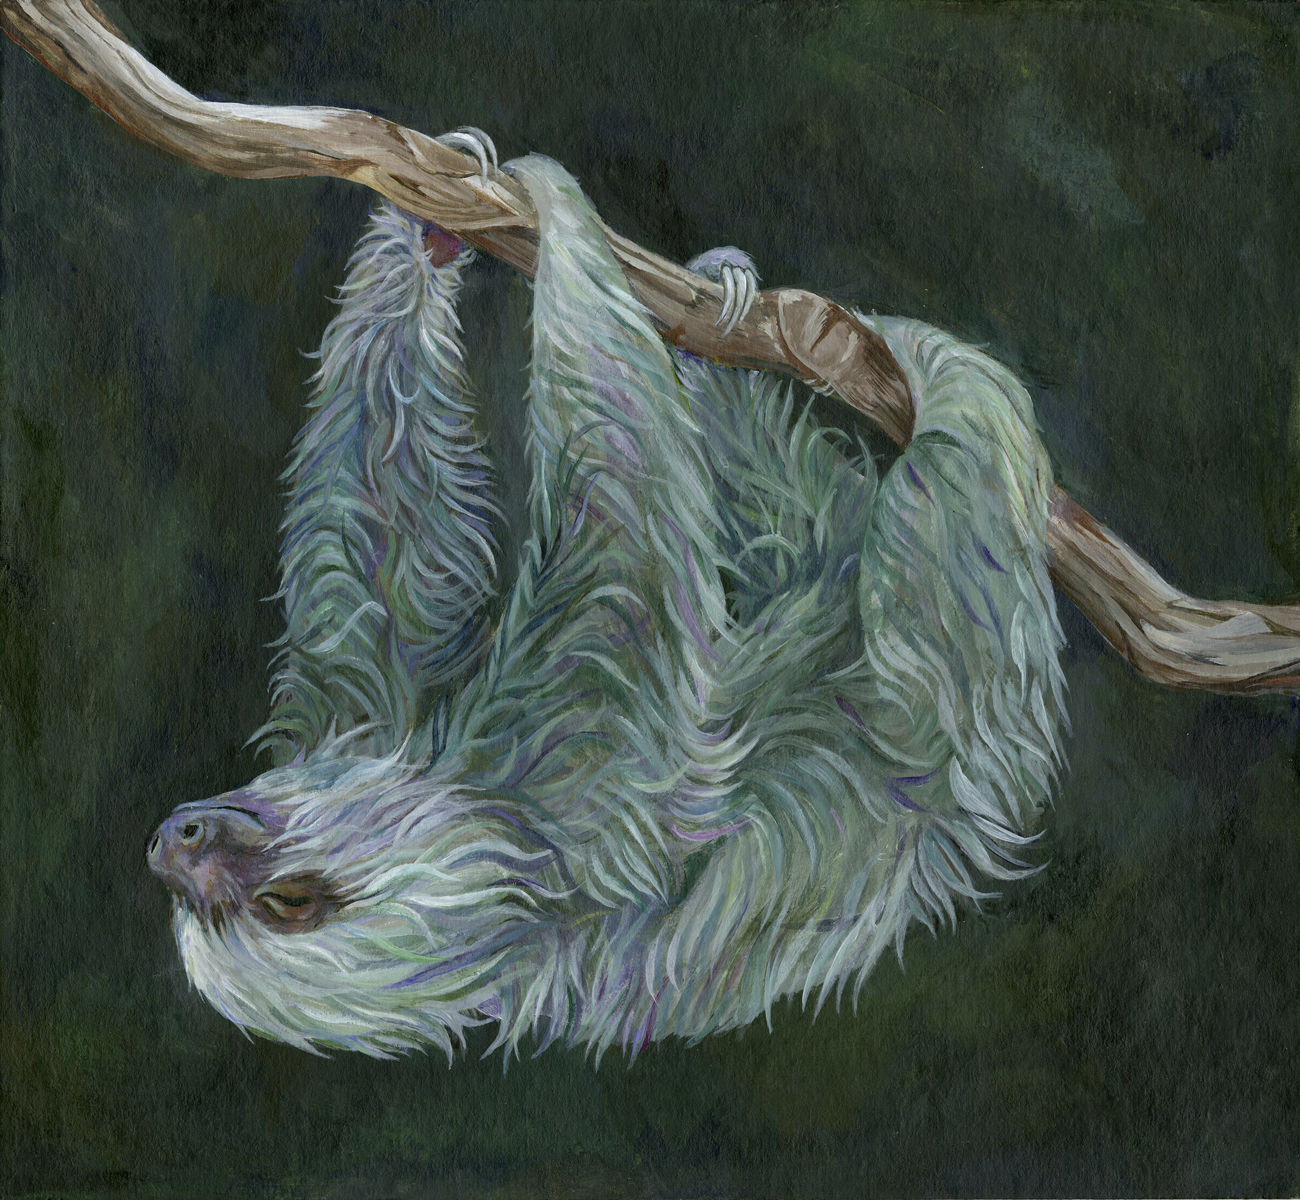 mossy sloth - 12 X 13acrylic paint on chipboardprints available on request